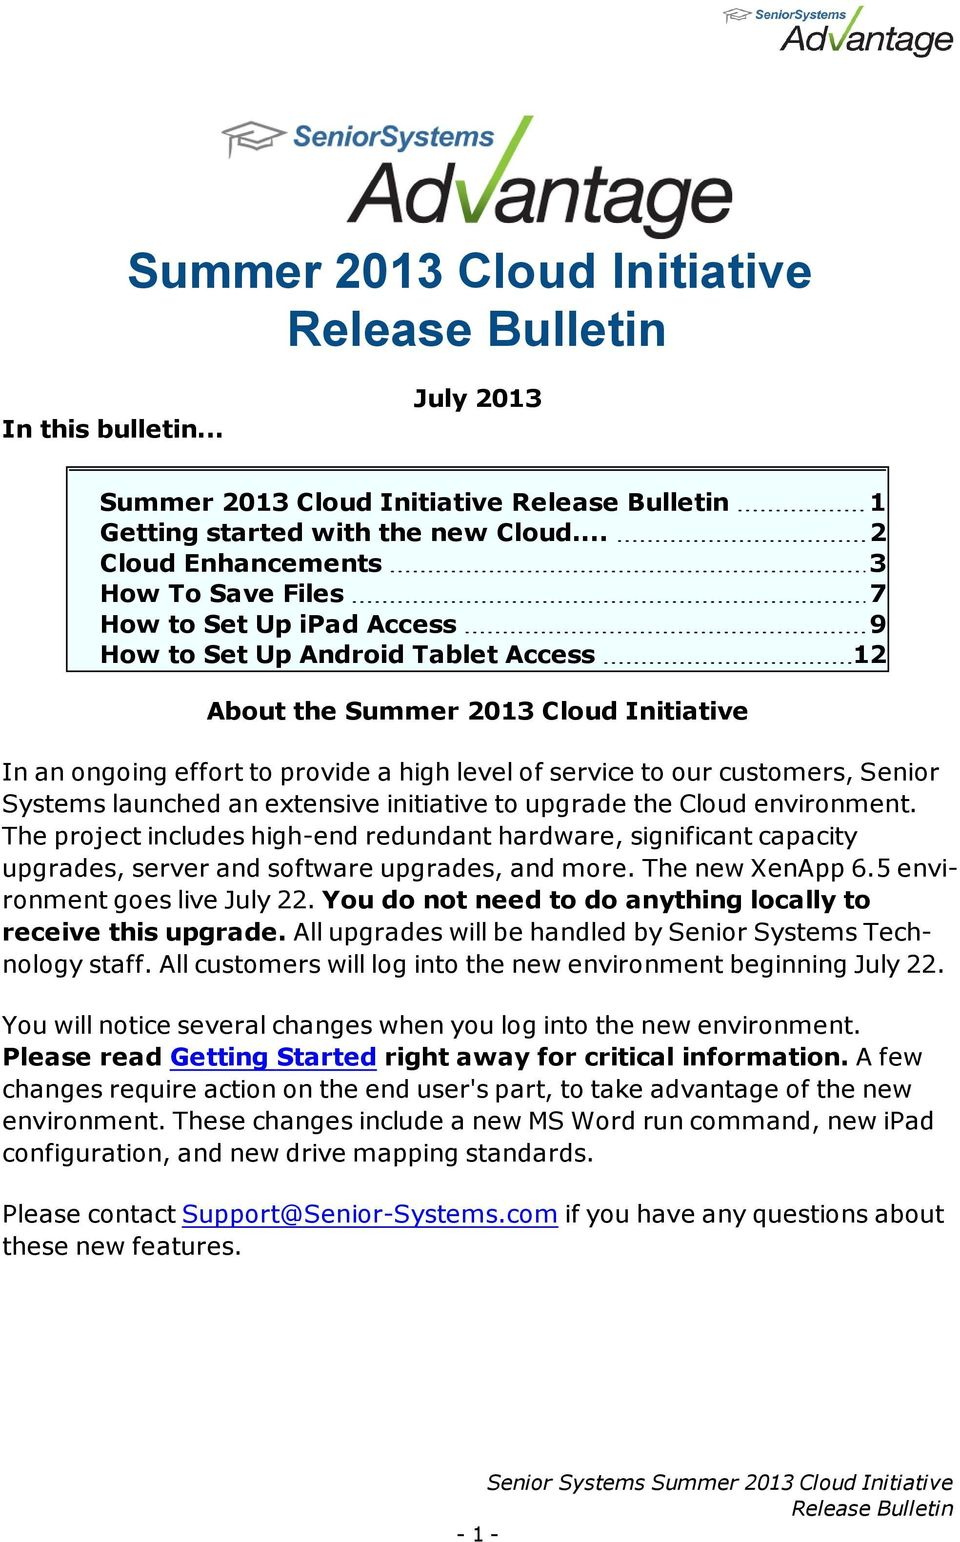 service to our customers, Senior Systems launched an extensive initiative to upgrade the Cloud environment.